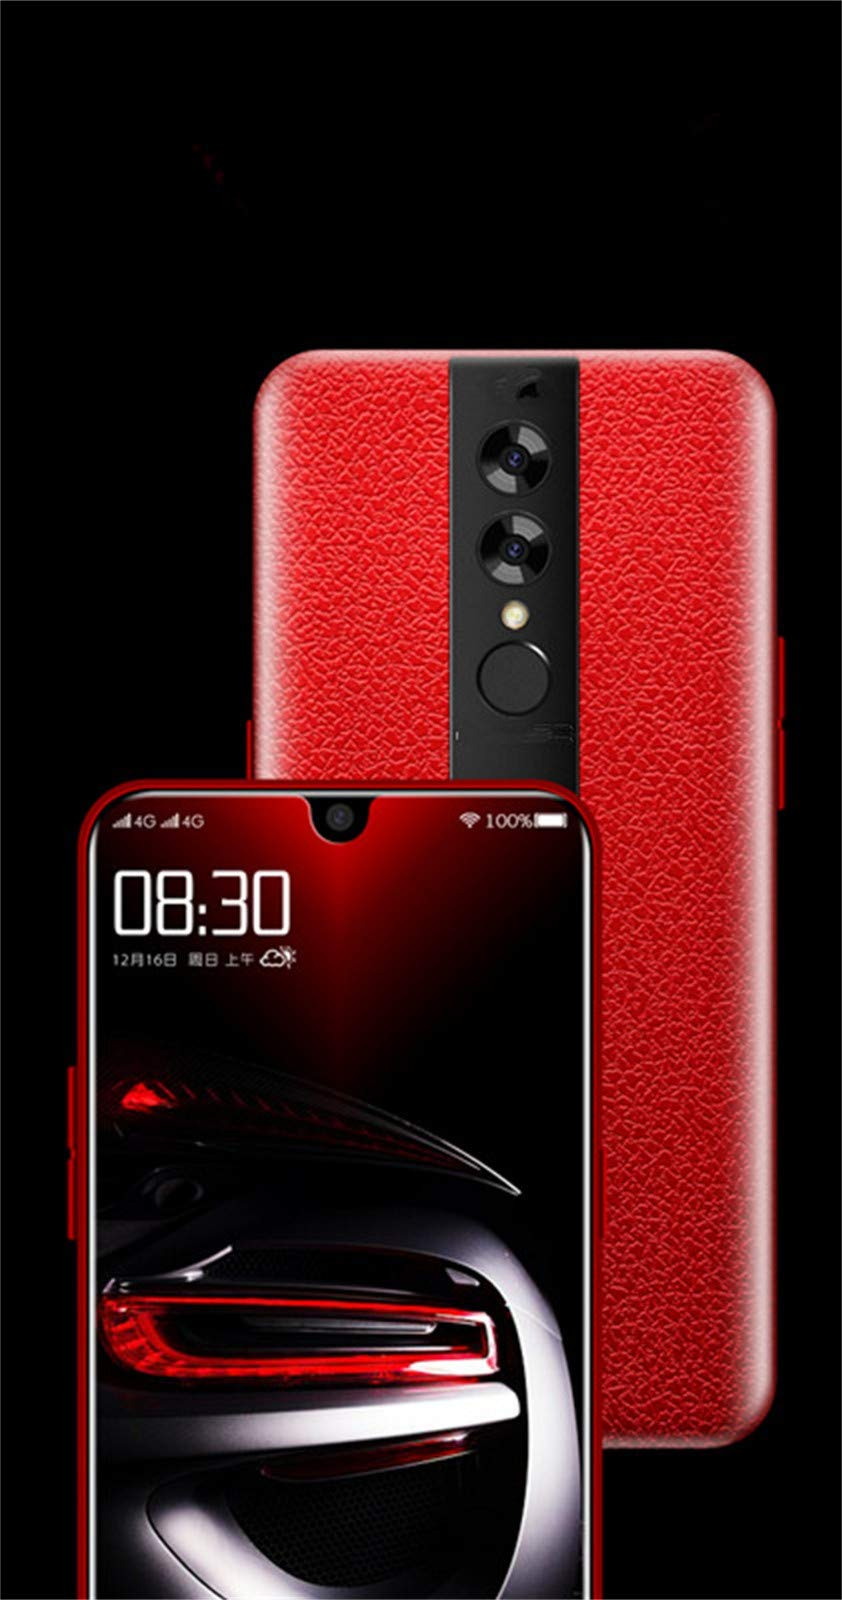 OutTop(TM) MATE20 6.18 Inch Dual HD+ Camera Water Drop Screen Android 8.1 2G+32G GPS 3G Smartphone Big Capacity 3800mAh Battery (Red) by OutTop(TM) (Image #3)